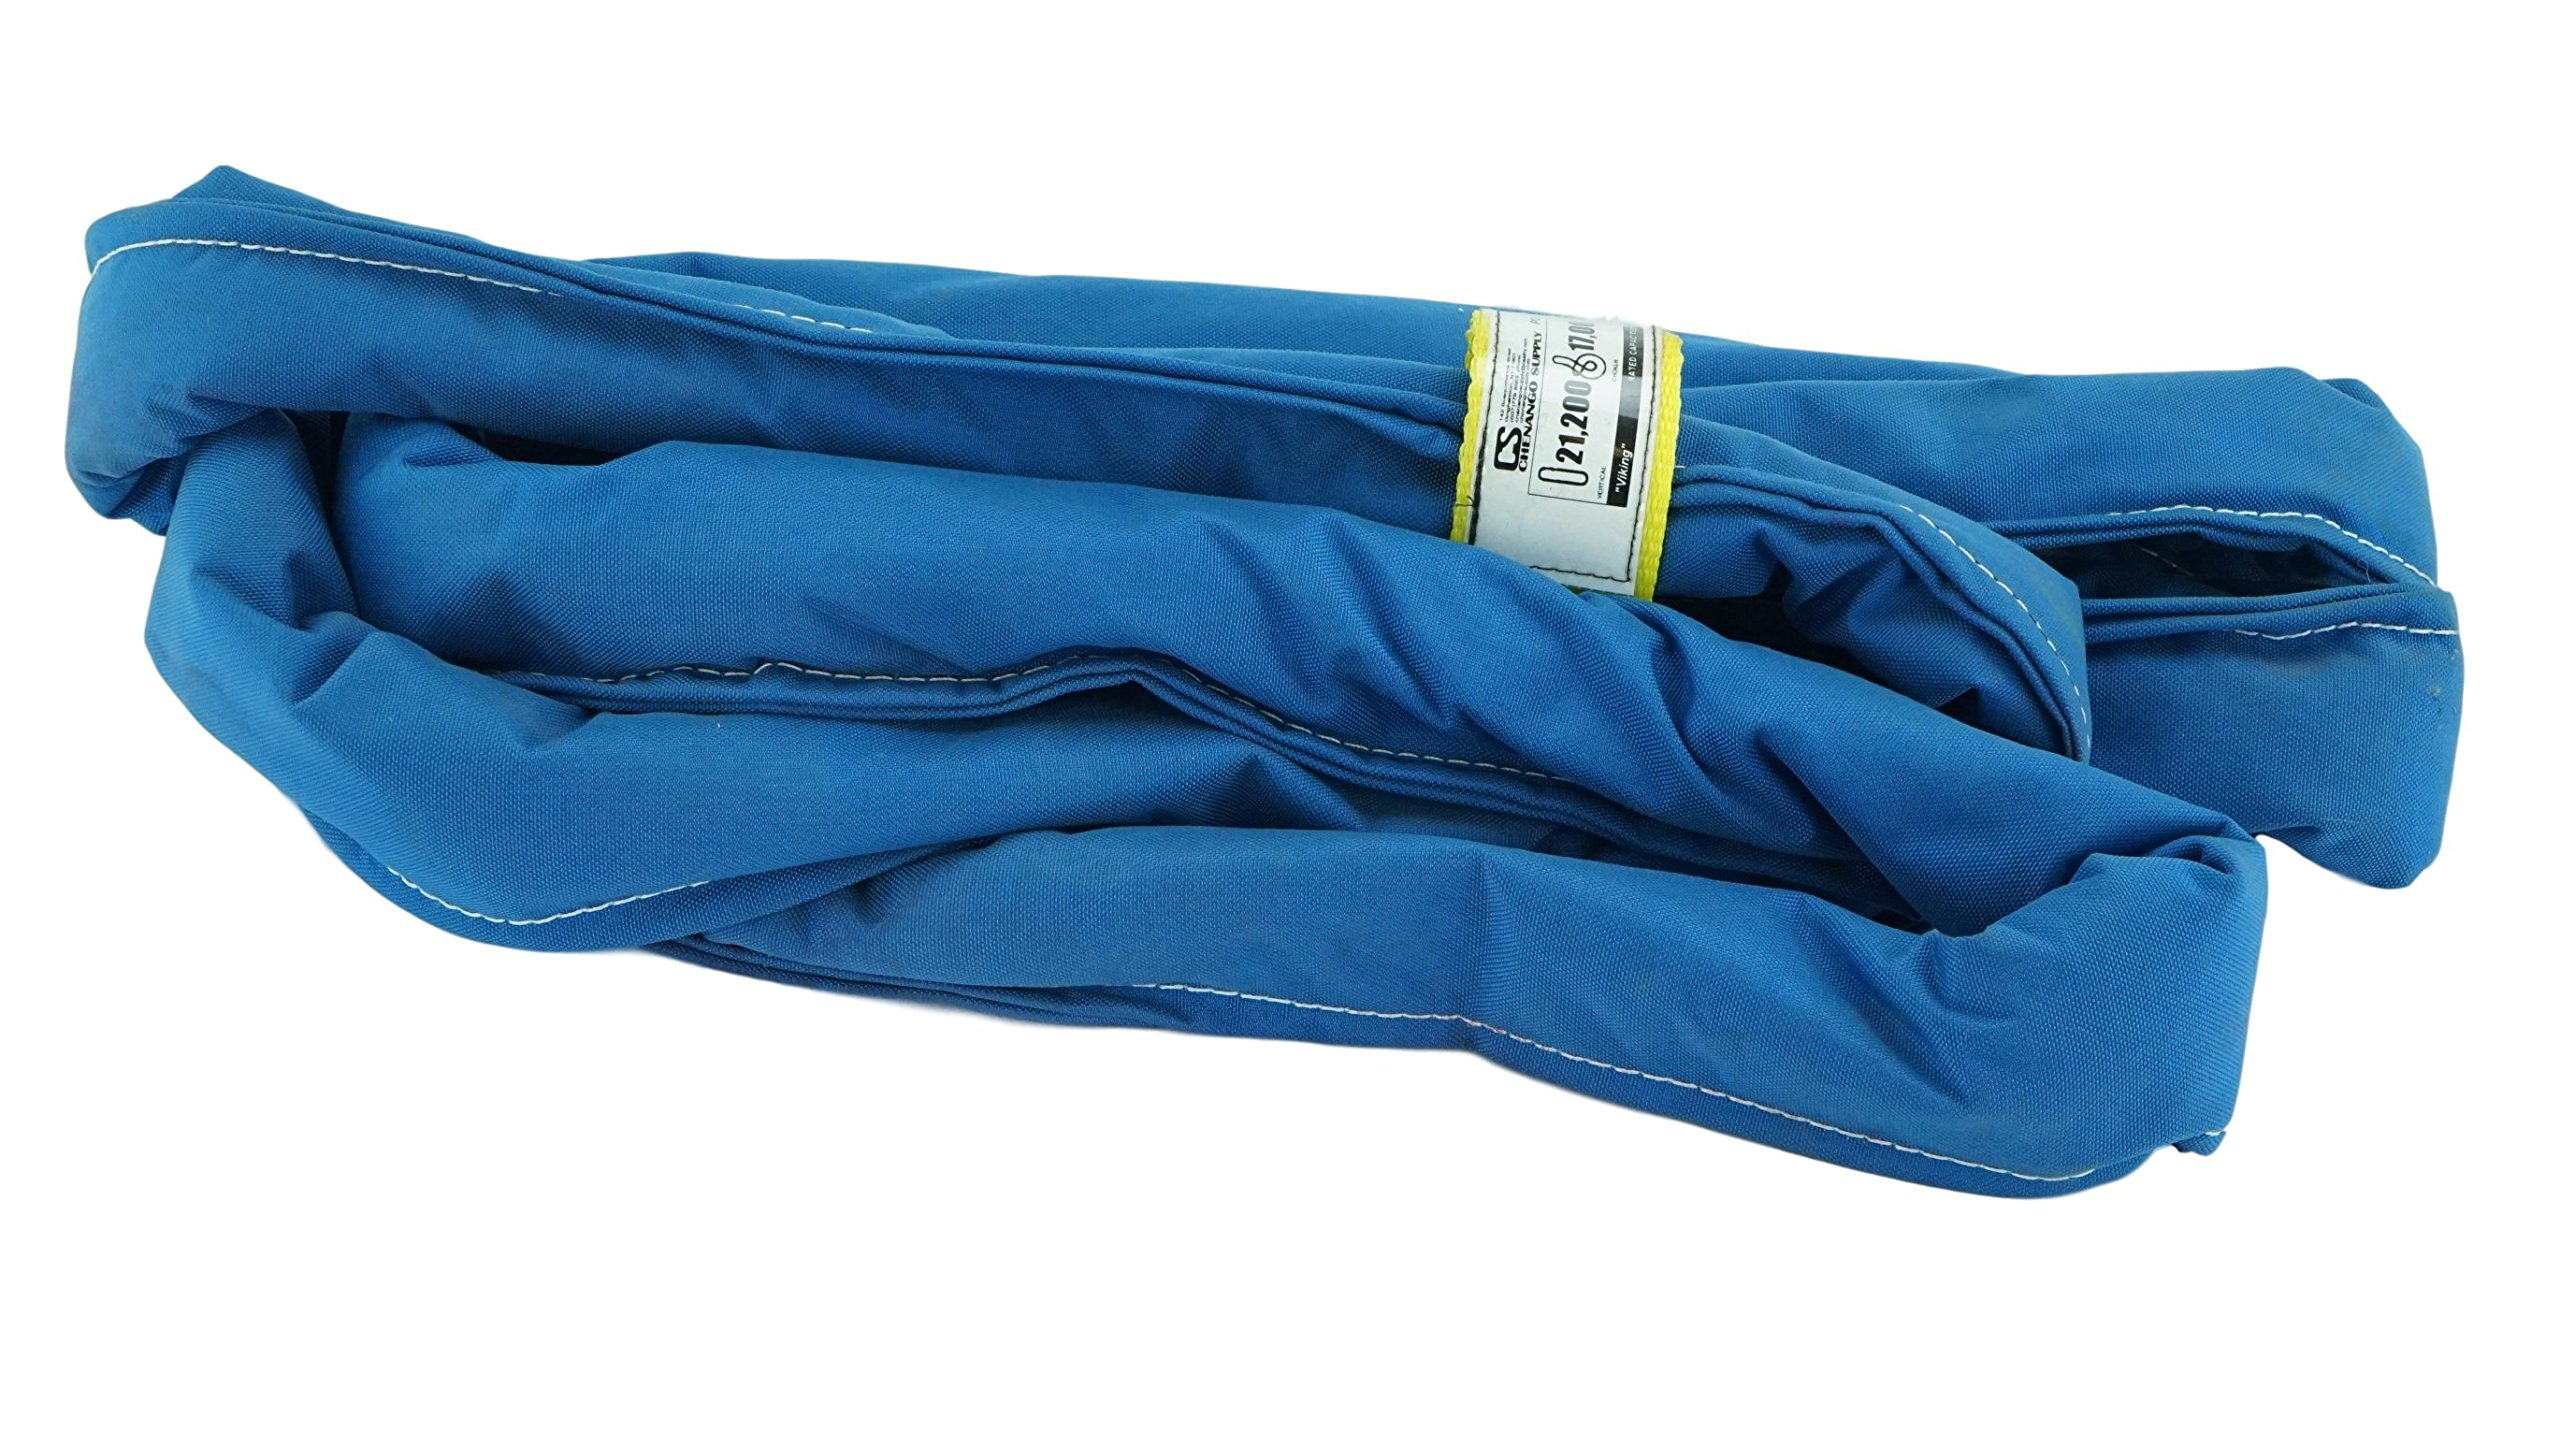 USA Made VR7 X 8' Blue Slings 8'-20' Lengths In Listing, DOUBLE PLY COVER Endless Round Poly Lifting Slings, 21,200 lbs Vert, 17,000 lbs Choker, 42,400 lbs Basket (USA Polyester) (8 FT) by Chenango Supply